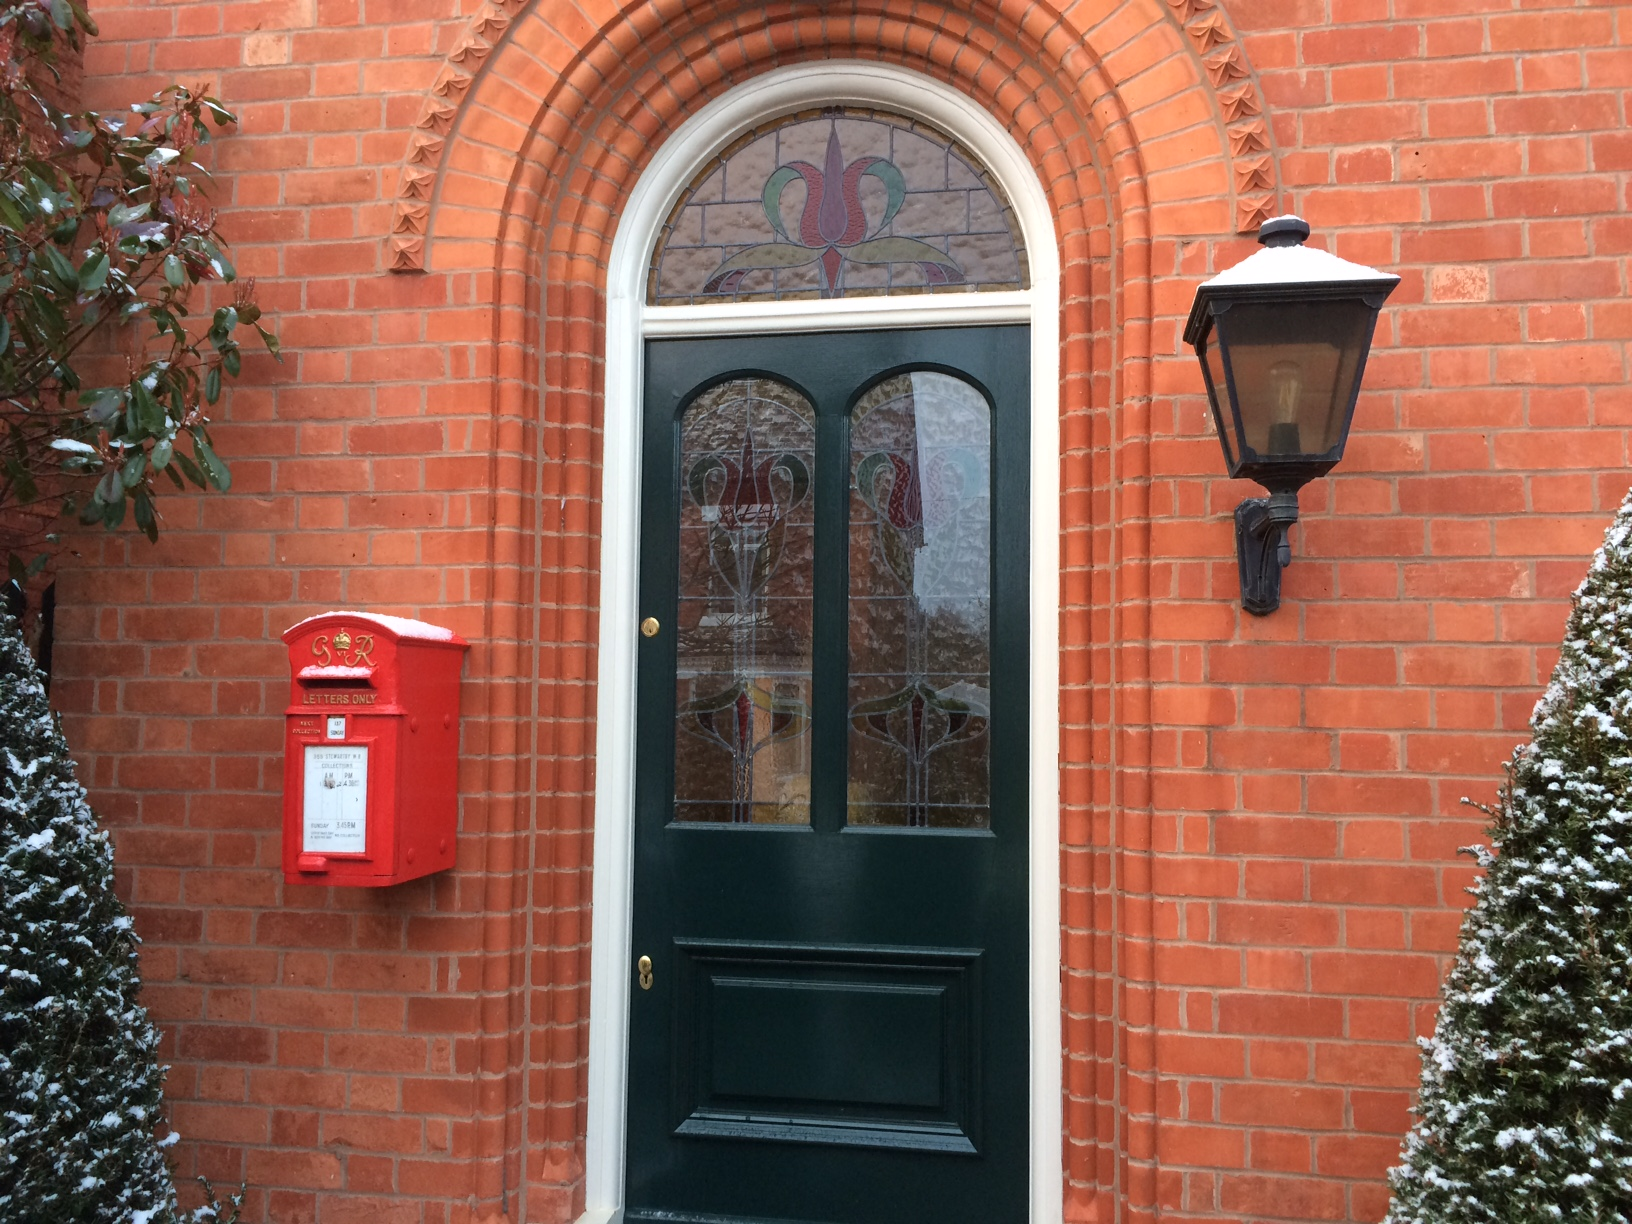 Antique  George VI Letters Only Royal Mail Post Box Fitted for use as a personal post box in a traditional home. Genuine British post boxes available online